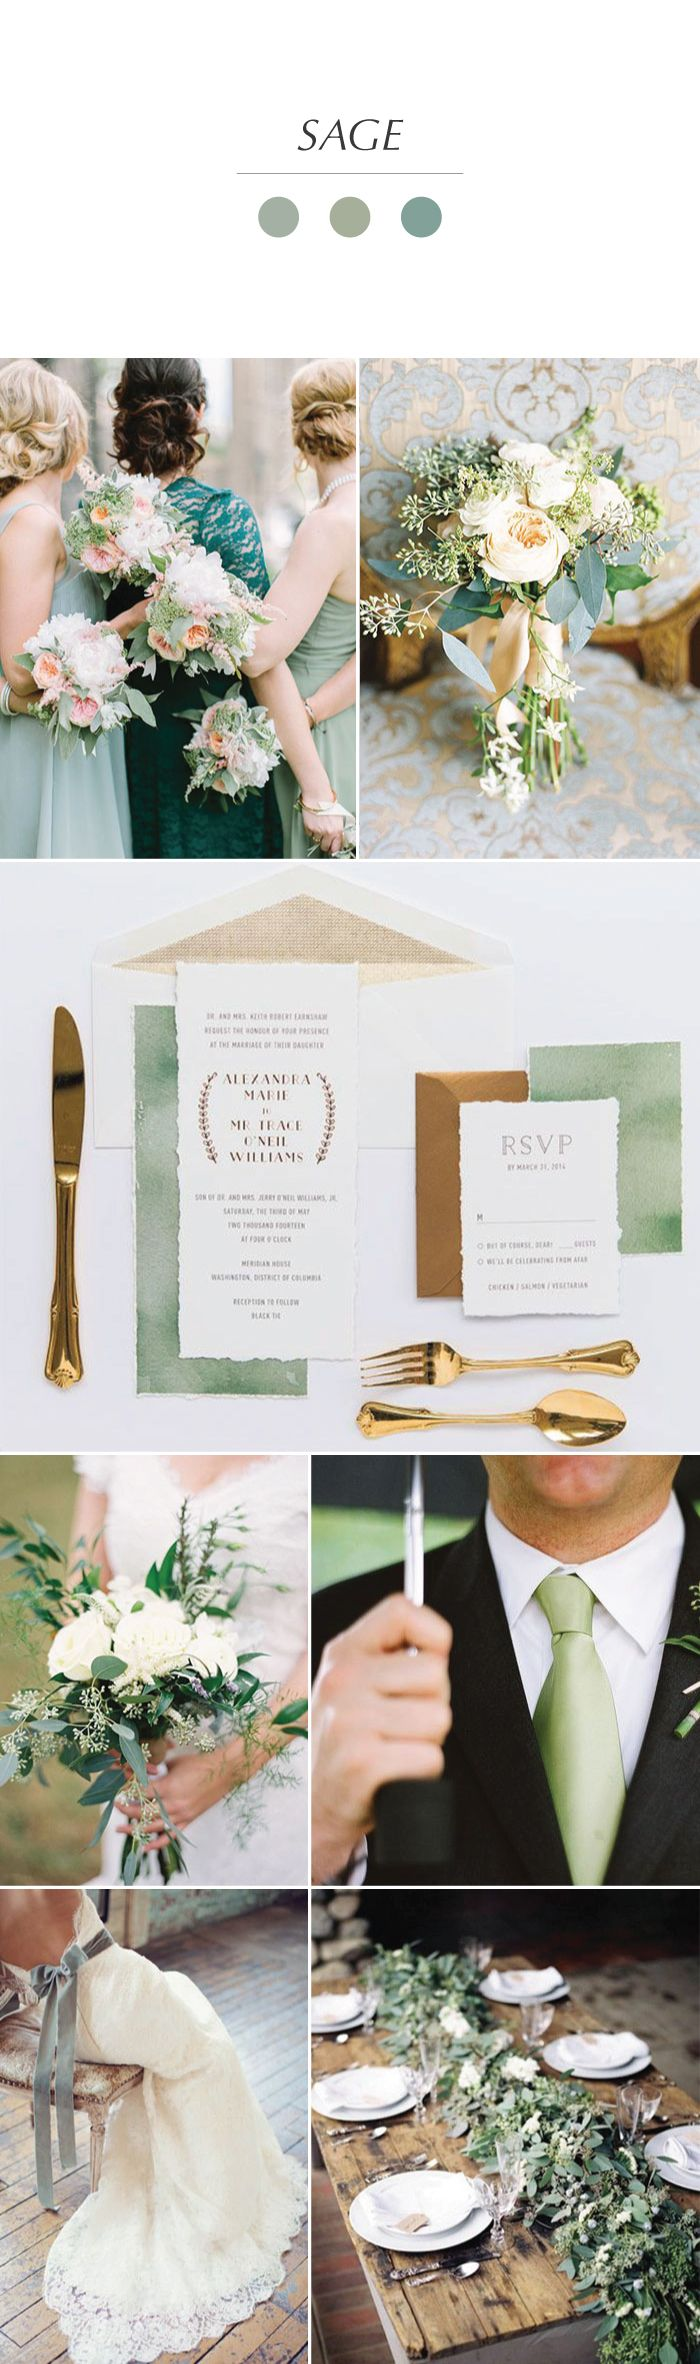 Planning a Sage Green Wedding   Check out these Ideas.